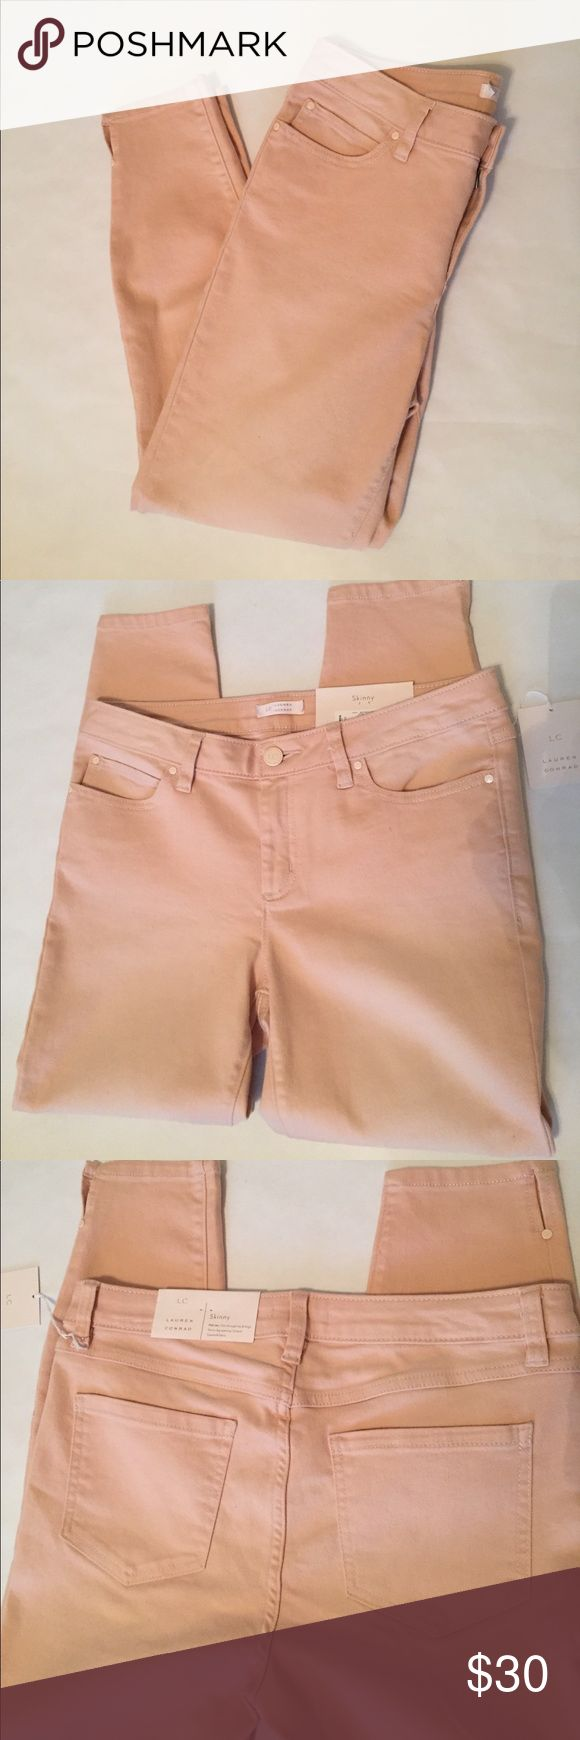 "🆕 LC Lauren Conrad peach denim skinny jeans Beautiful peach skinny jeans by Lauren Conrad. Nailhead details on front pockets, and leg slits. Inseam 26"", waist 17"" laying flat. Leg opening 11"". LC Lauren Conrad Jeans Skinny"